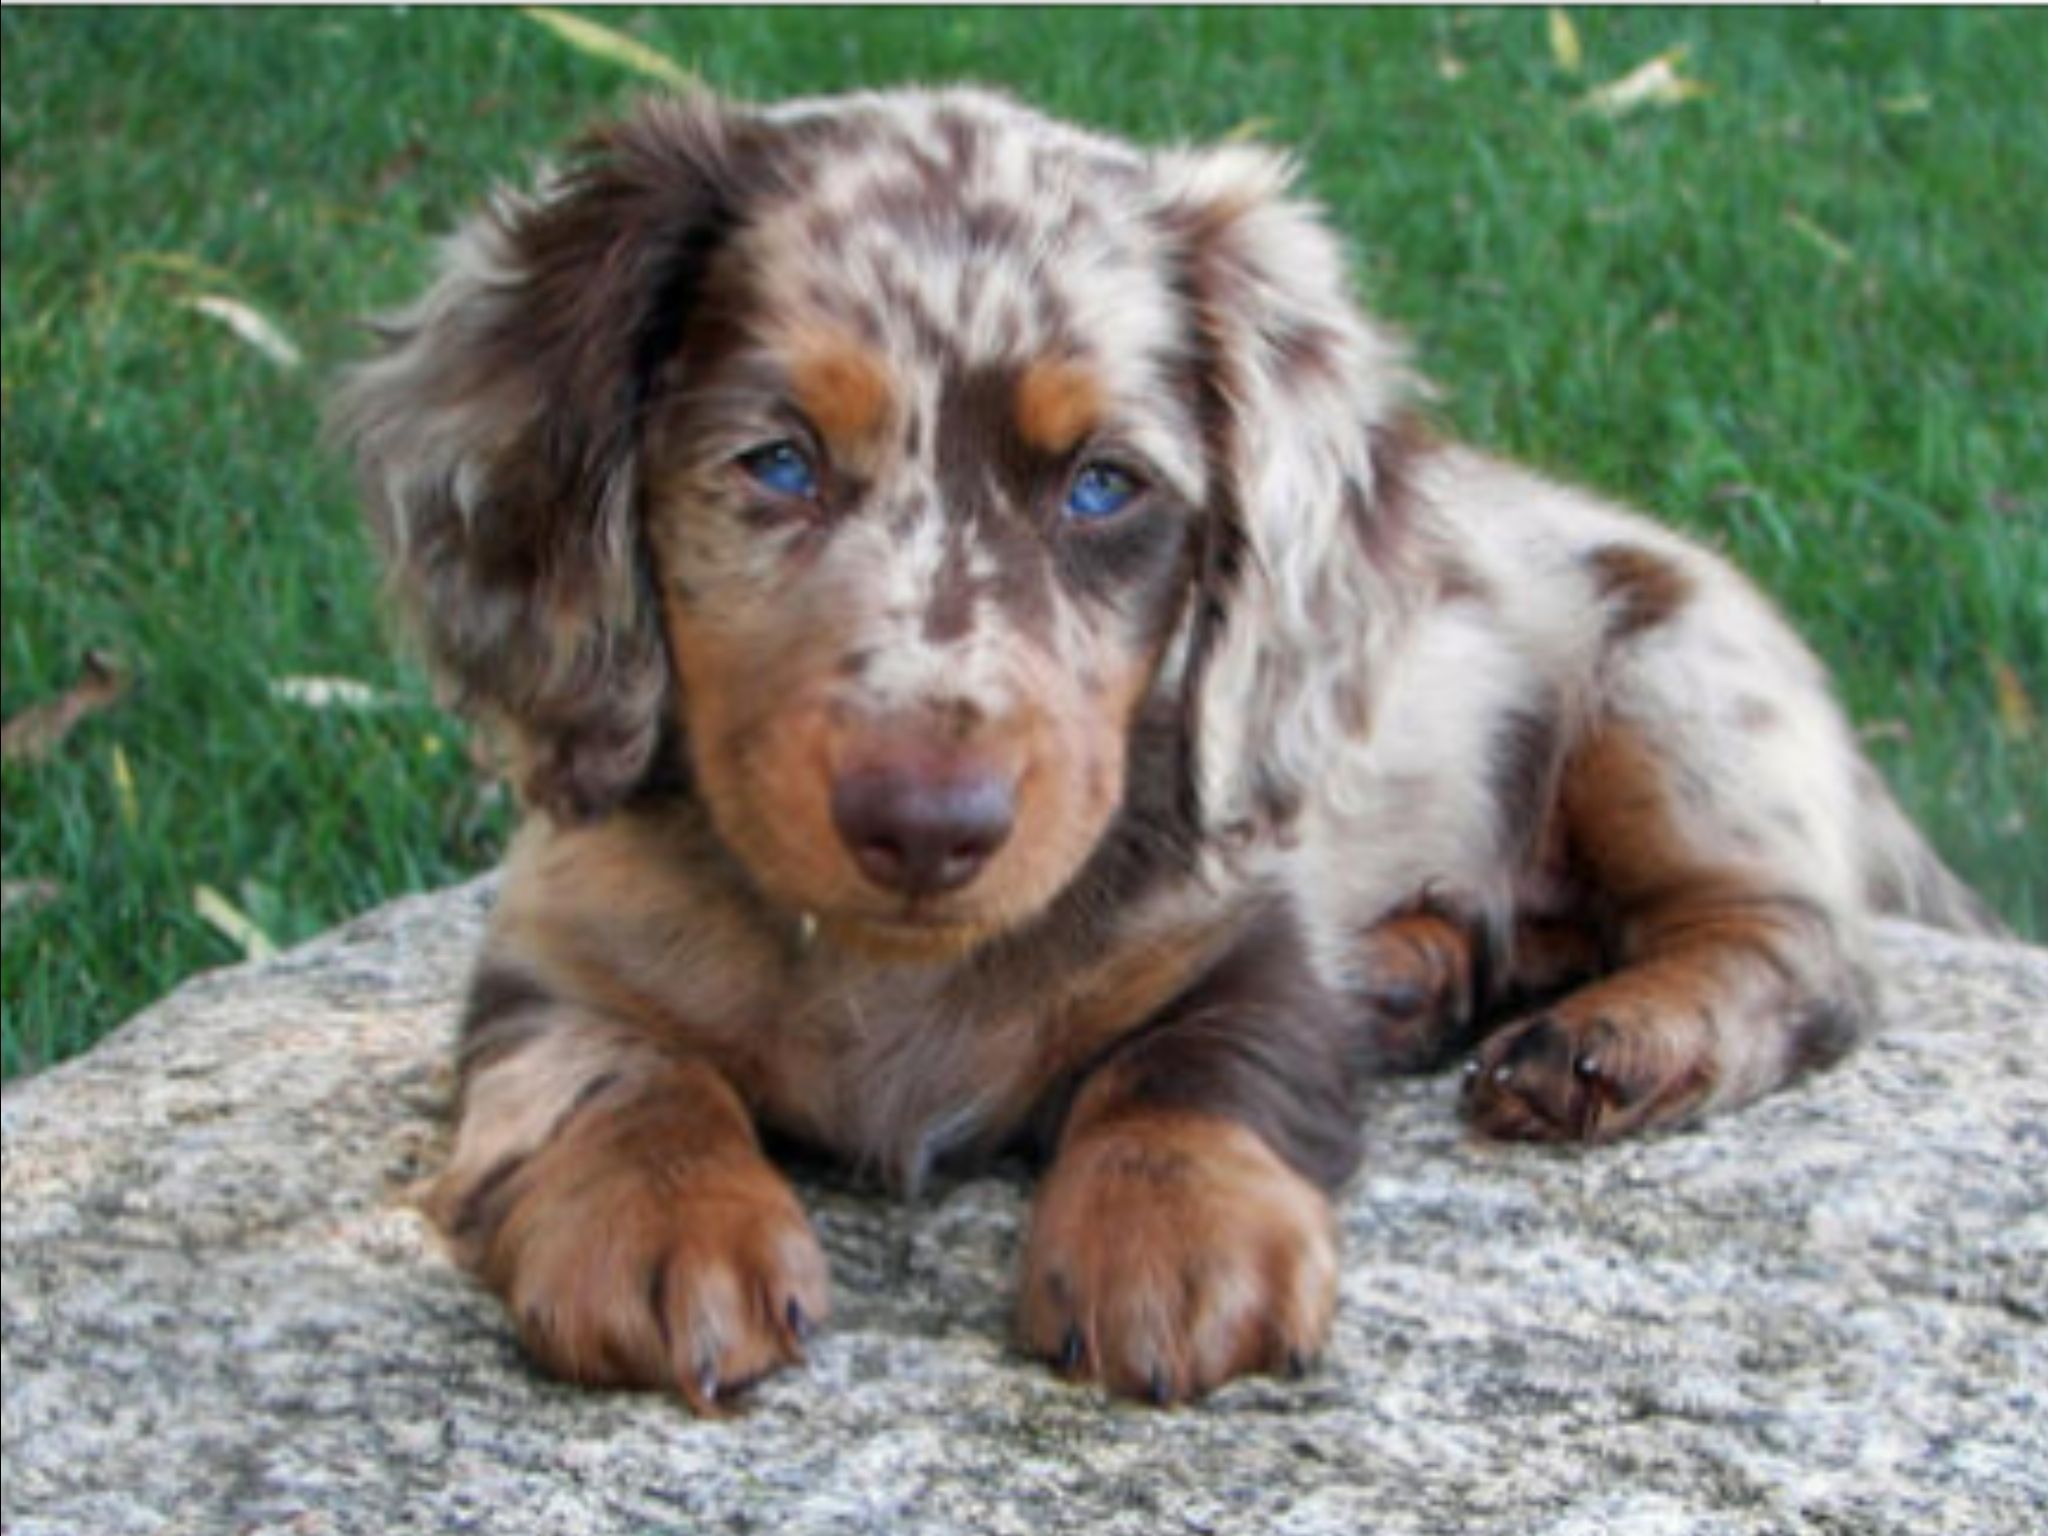 I Want A Female Dachshund Exactly Or Very Similar To This One